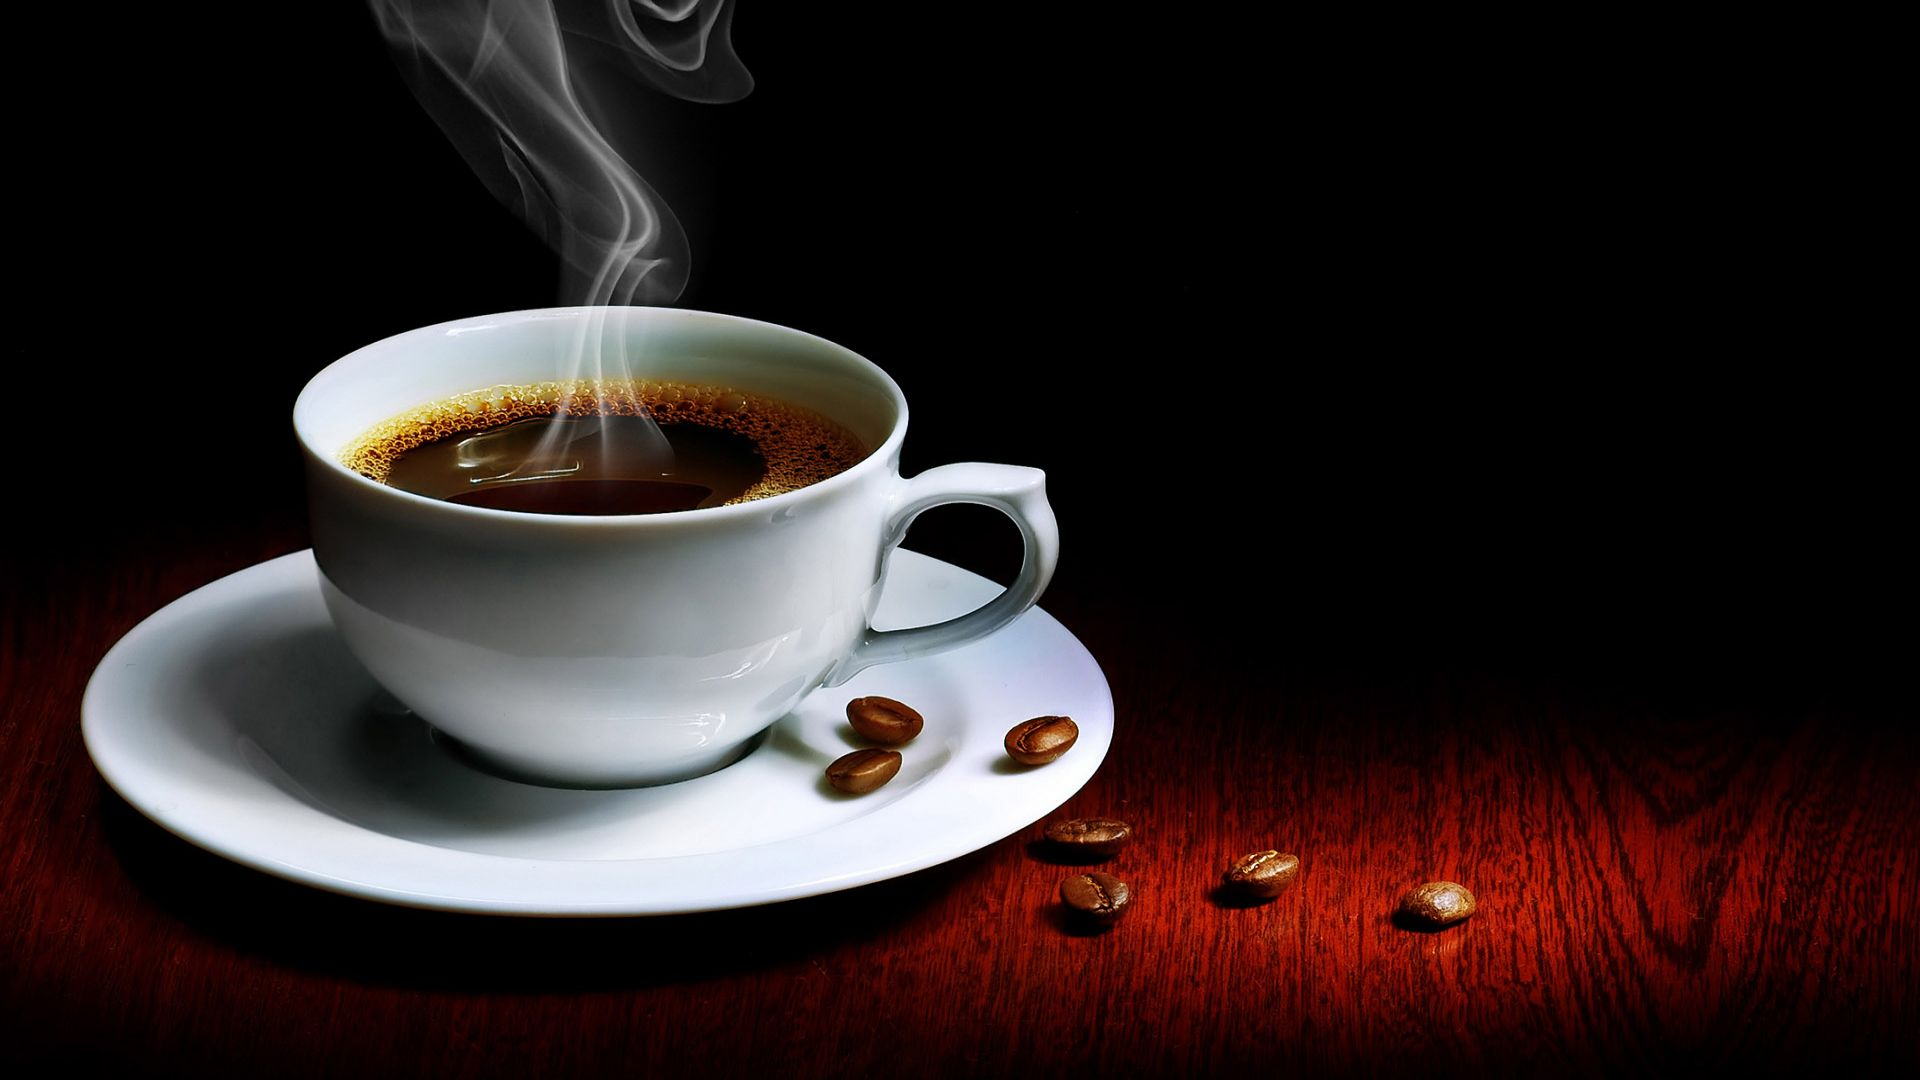 Coffee Wallpapers | Best Wallpapers